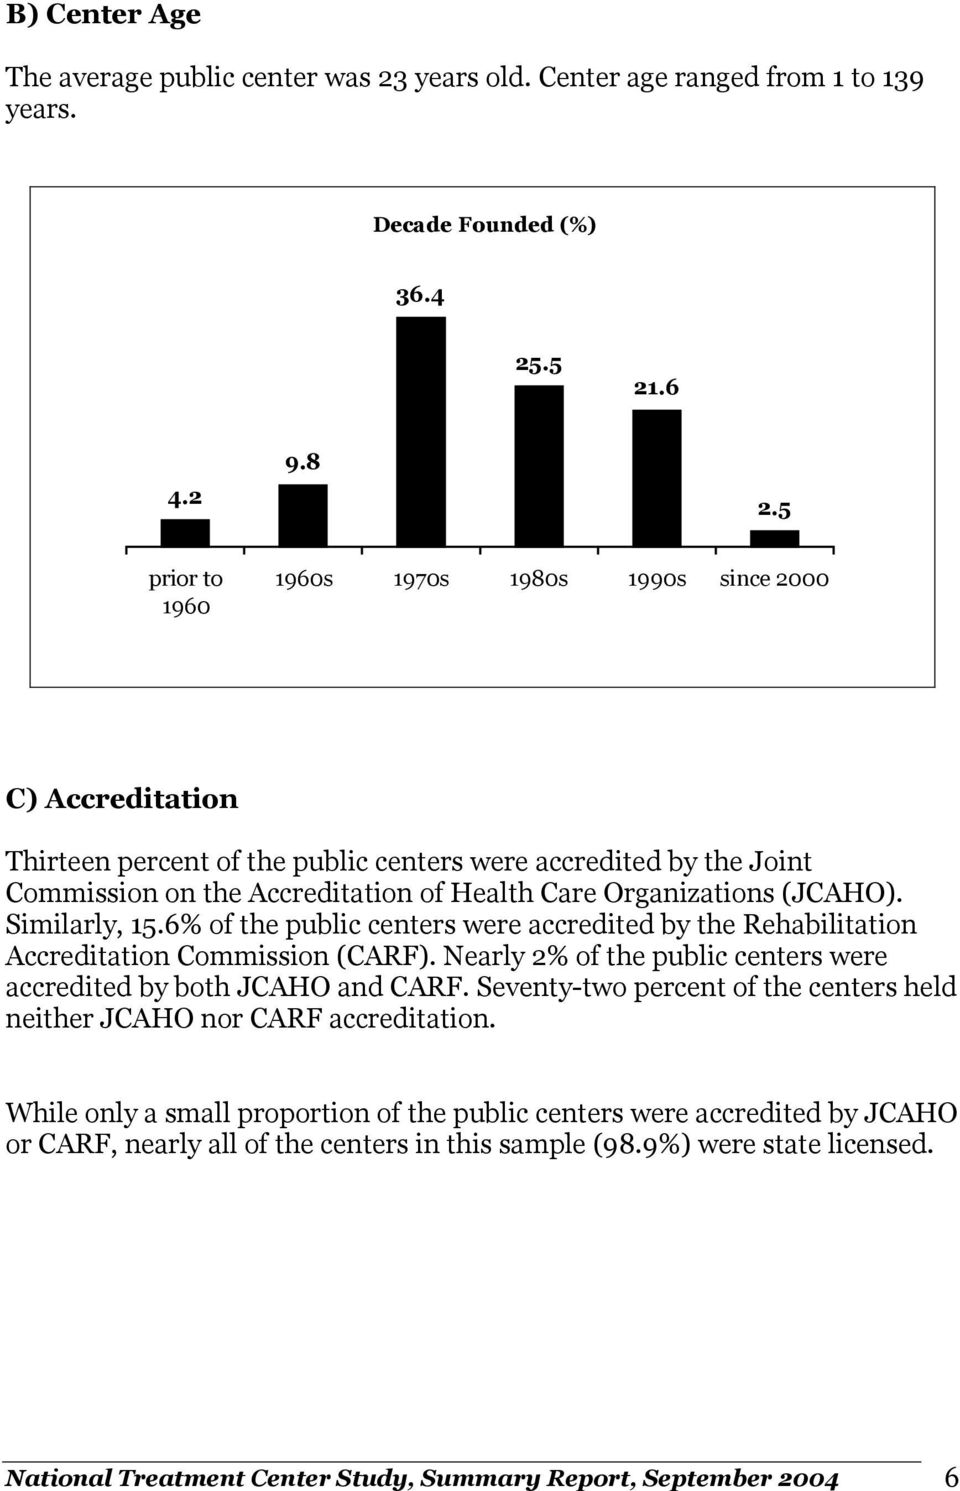 (JCAHO). Similarly, 15.6% of the public centers were accredited by the Rehabilitation Accreditation Commission (CARF). Nearly 2% of the public centers were accredited by both JCAHO and CARF.